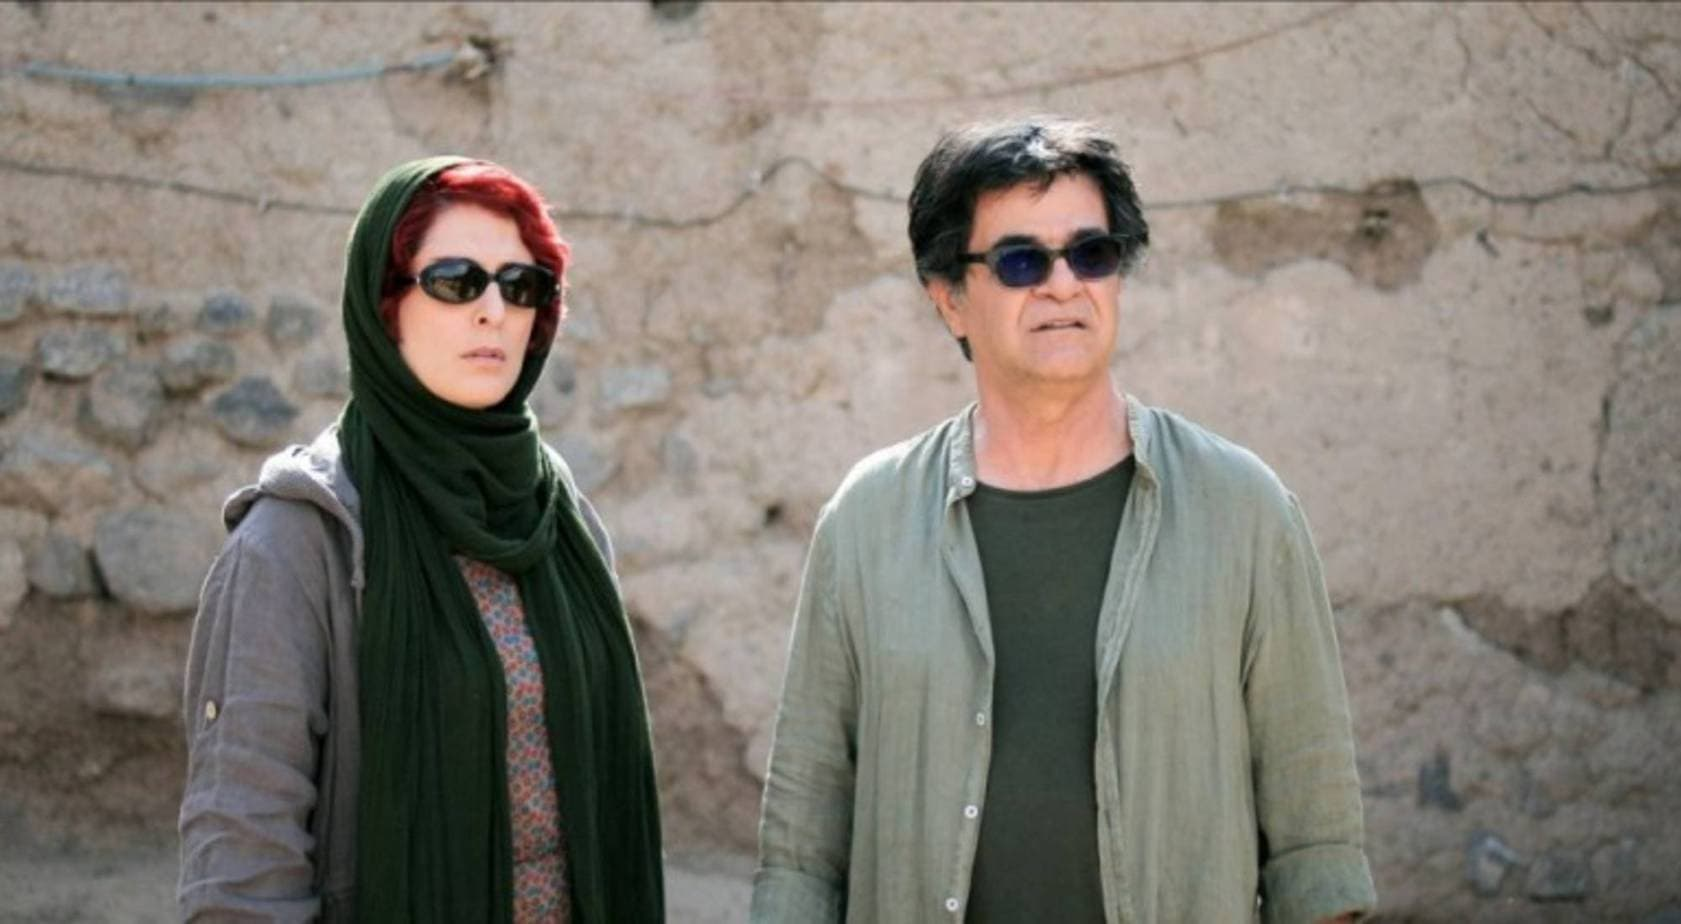 '3 Faces' – a film by Jafar Panahi